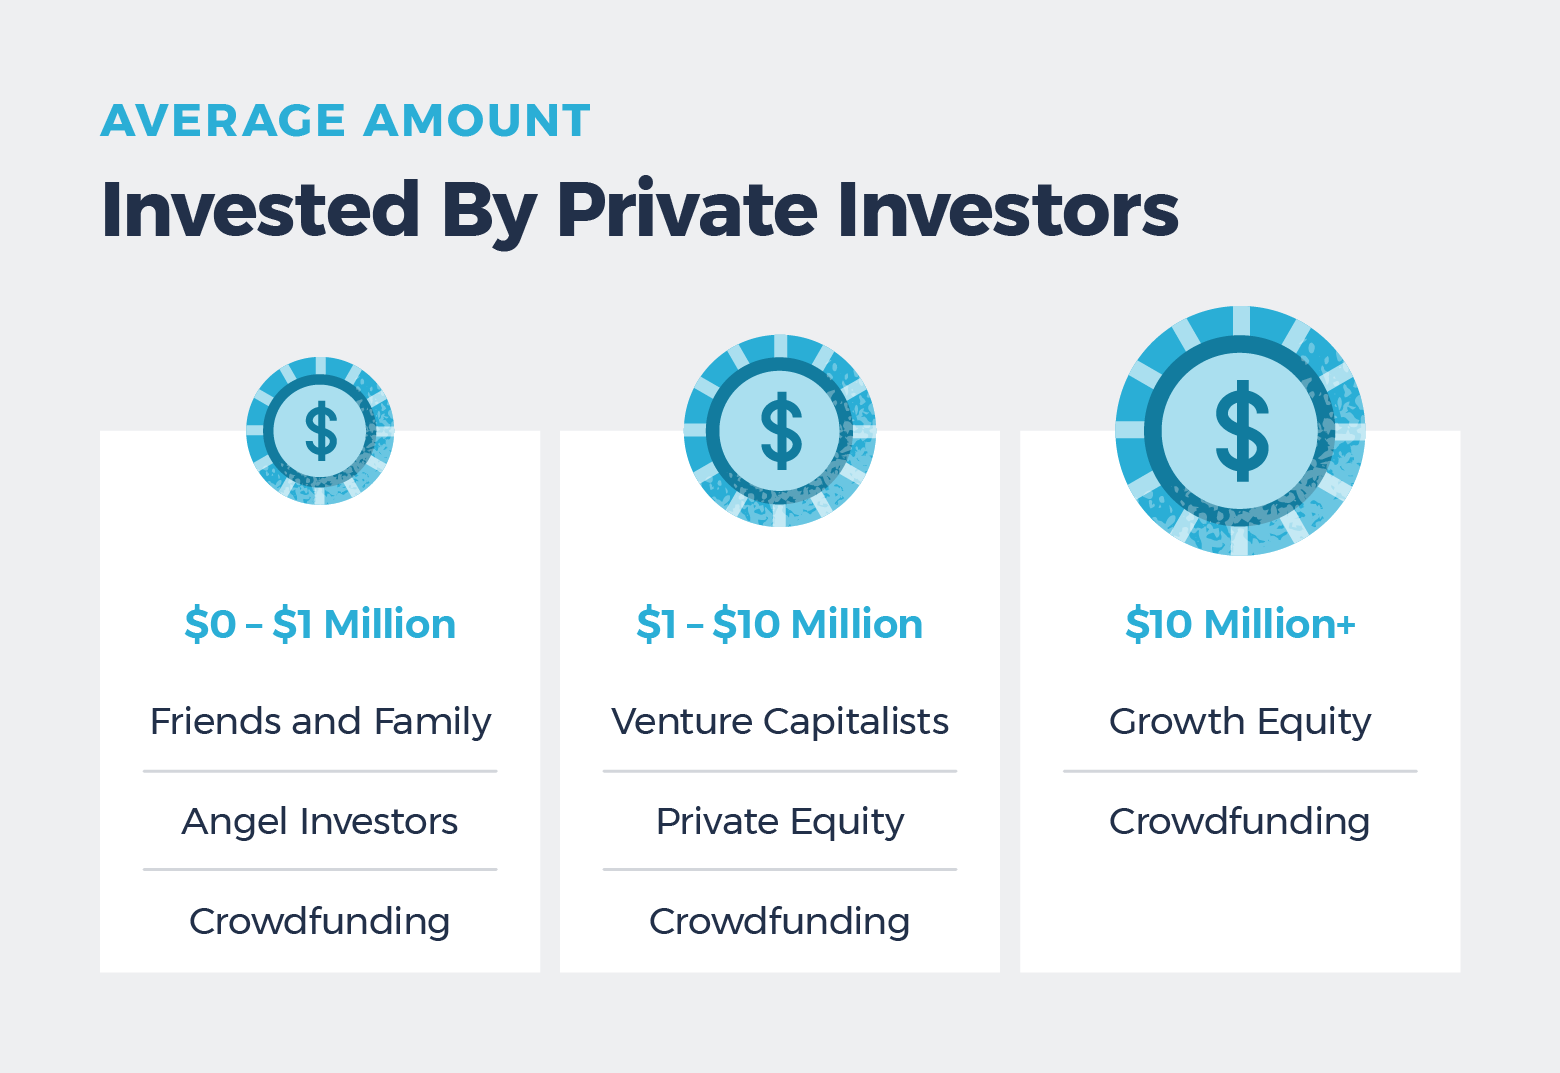 the average amount invested by various private investors